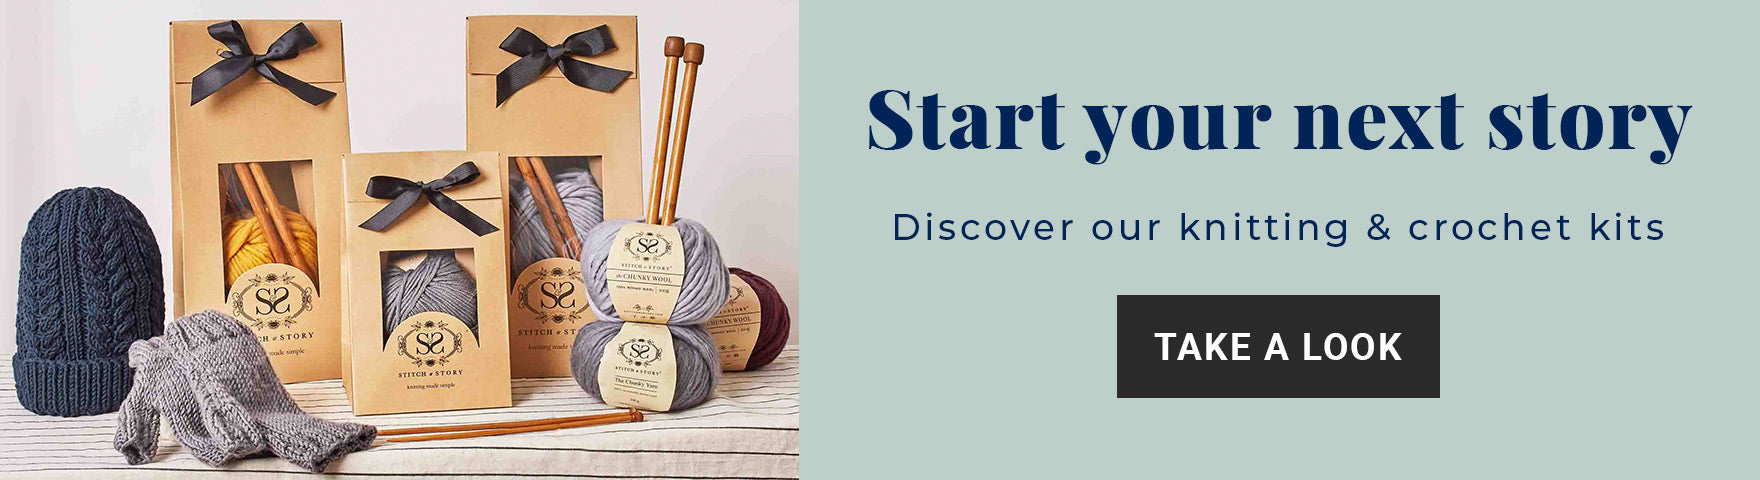 Shop for all-in-one knitting and crochet kits at Stitch & Story